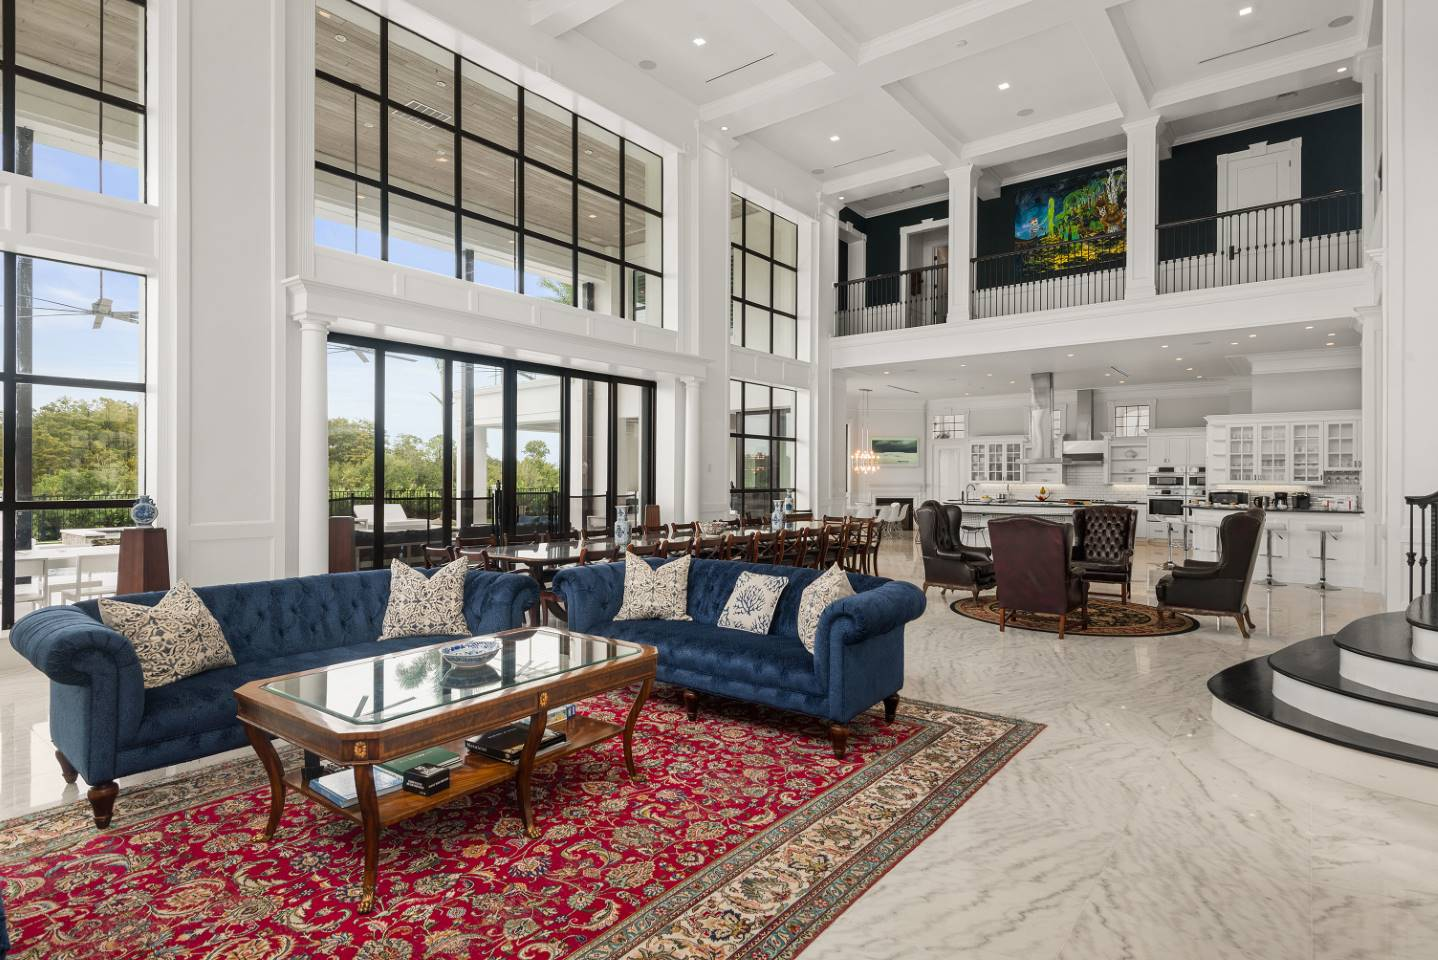 The Eclectic Colonial Estate-213672